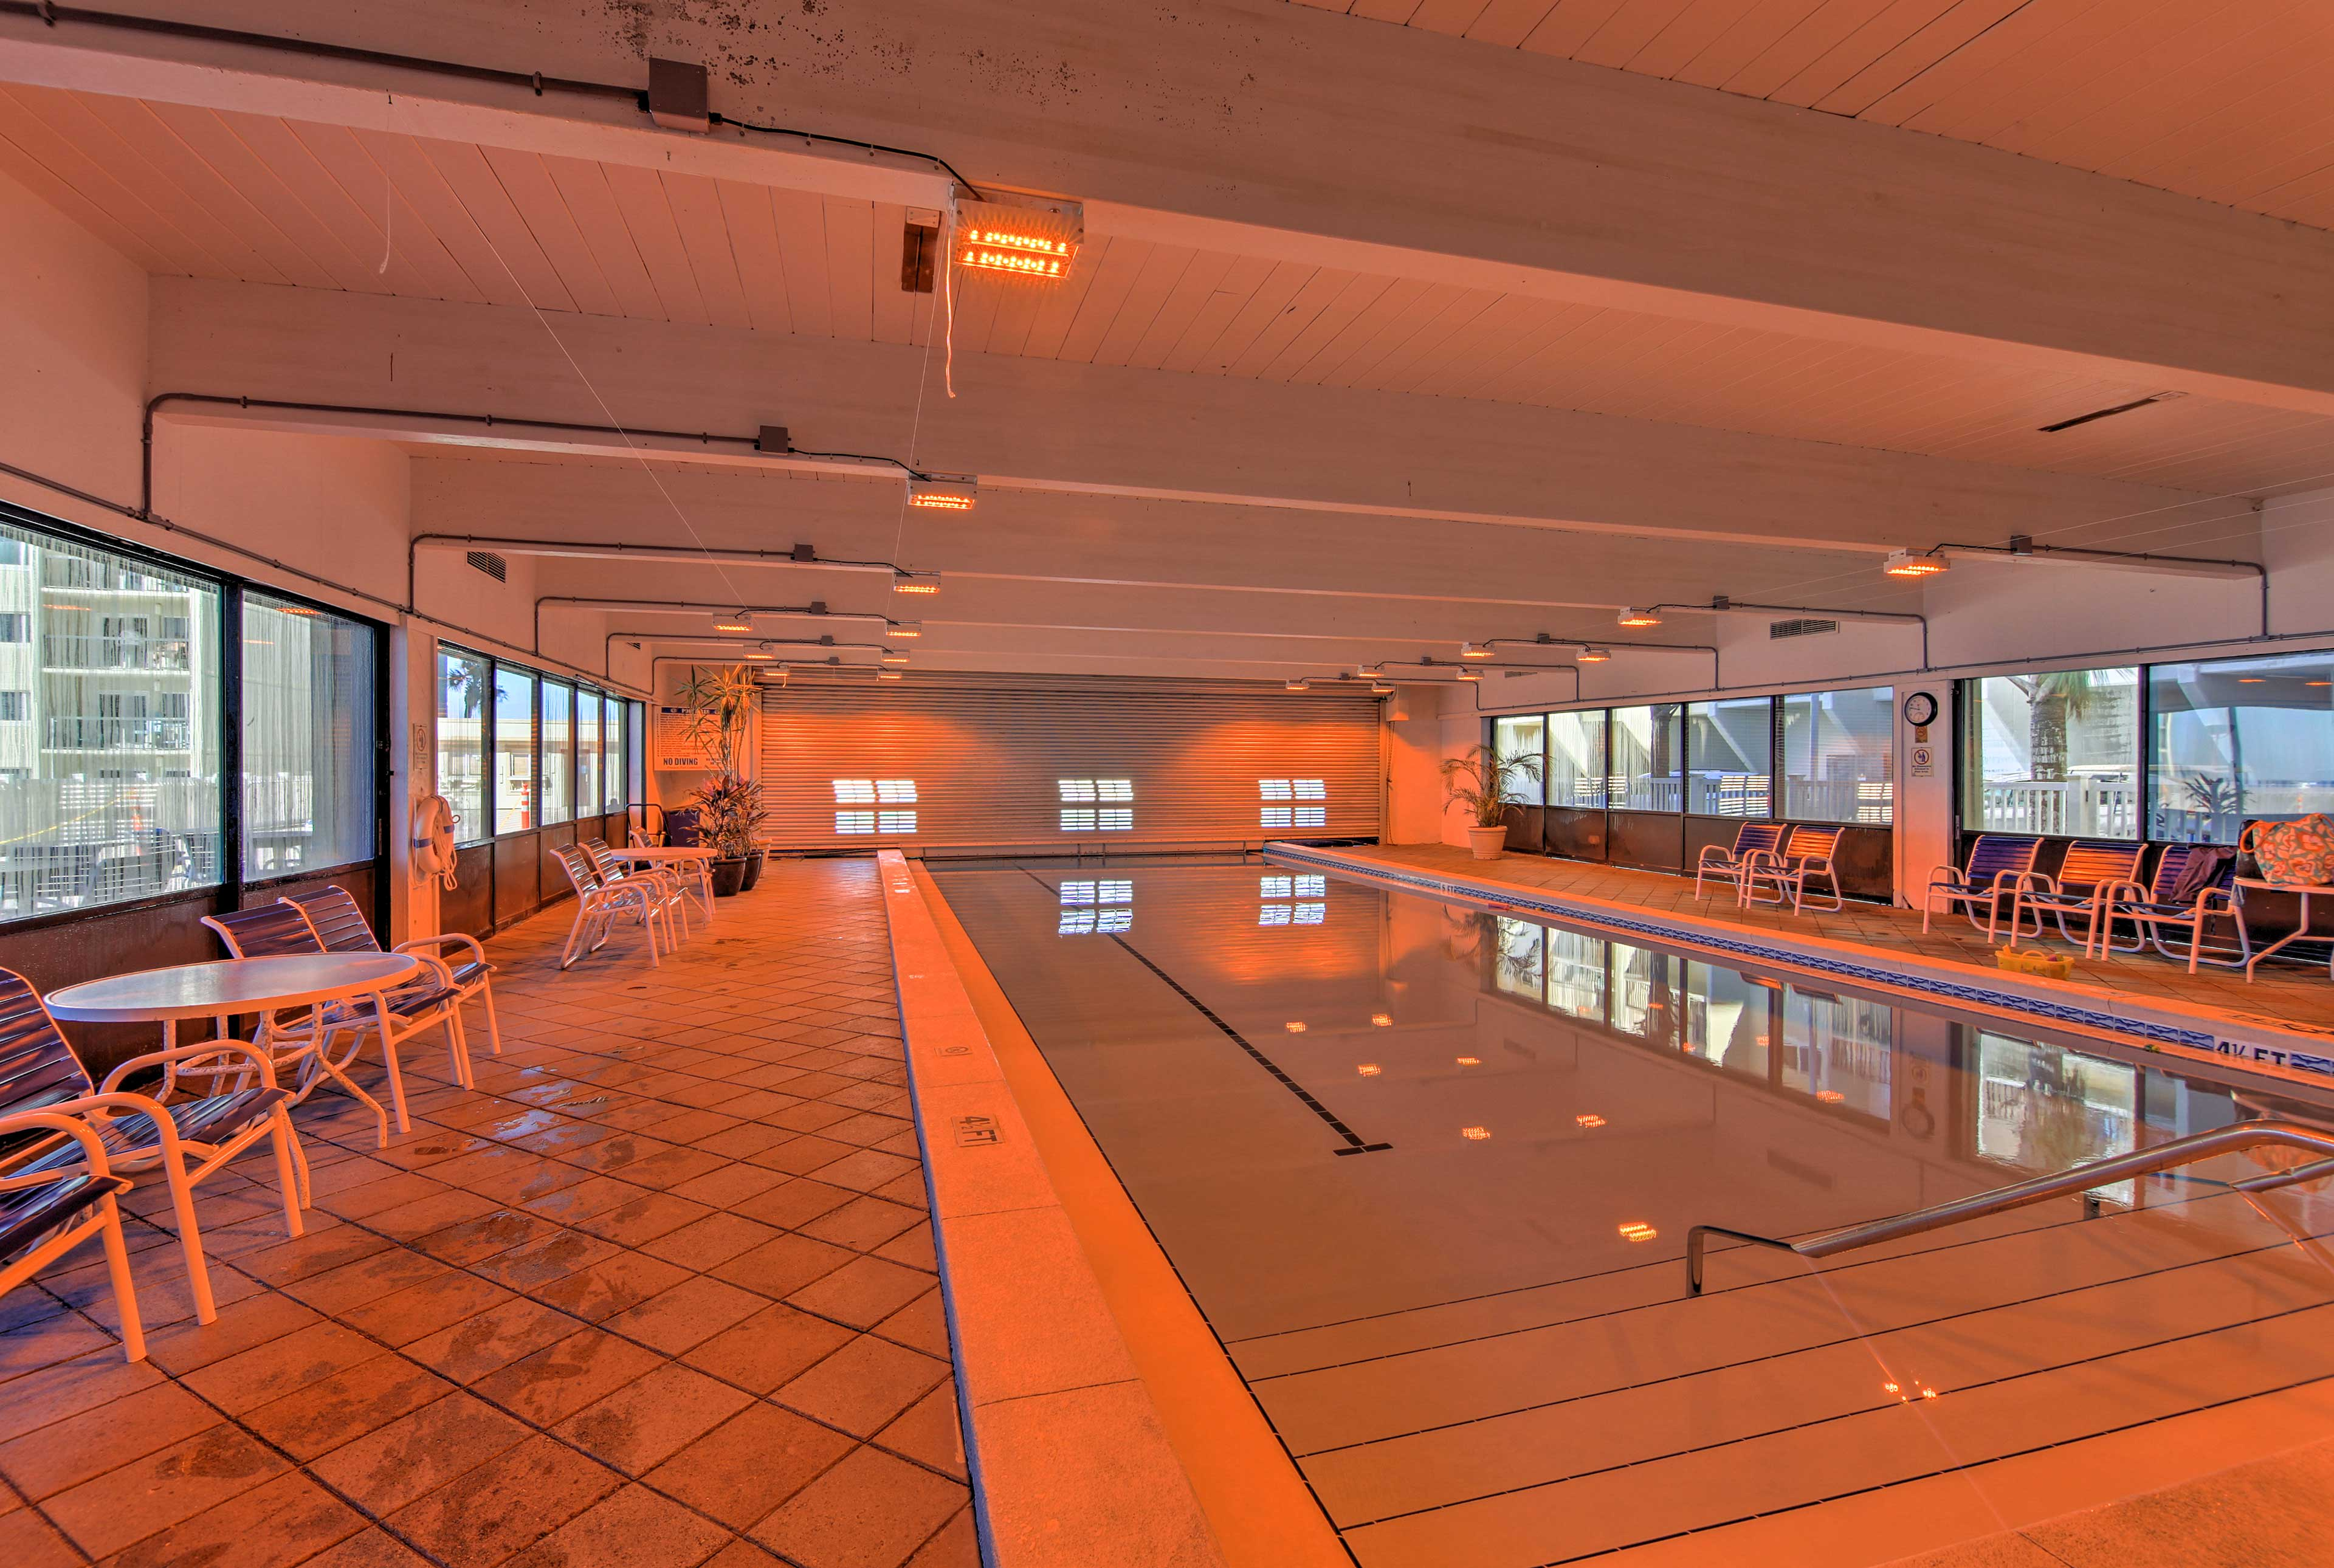 Swim in the indoor pool on those cloudy days.